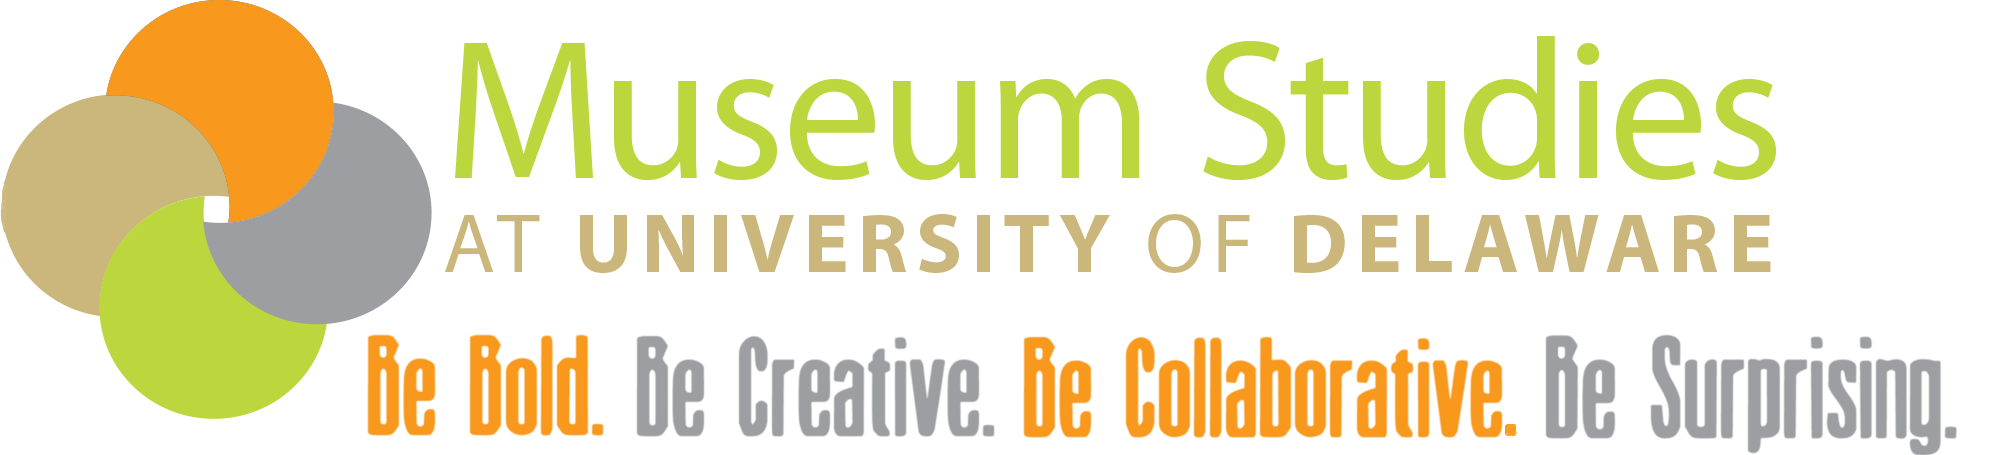 Museum studies program be bold be creative be collaborative museum studies program xflitez Gallery